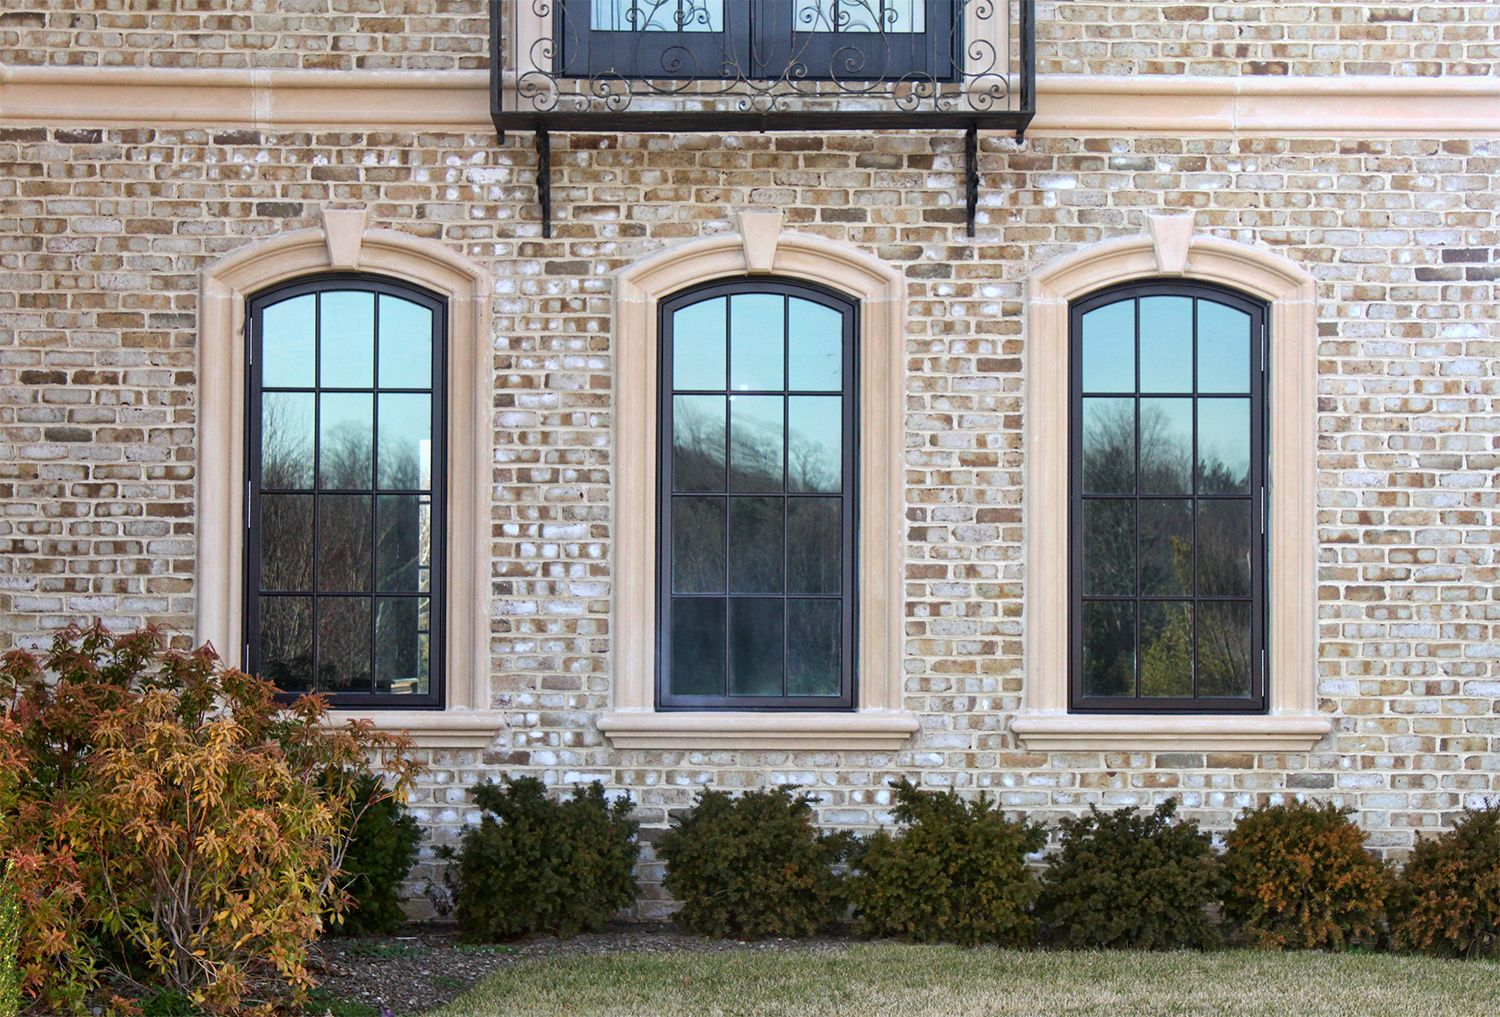 Make The Windows Of Your Home Look Wonderful With Precast Surrounds And Trim Www Coralcast Com Brick Exterior House Window Trim Exterior Exterior Brick